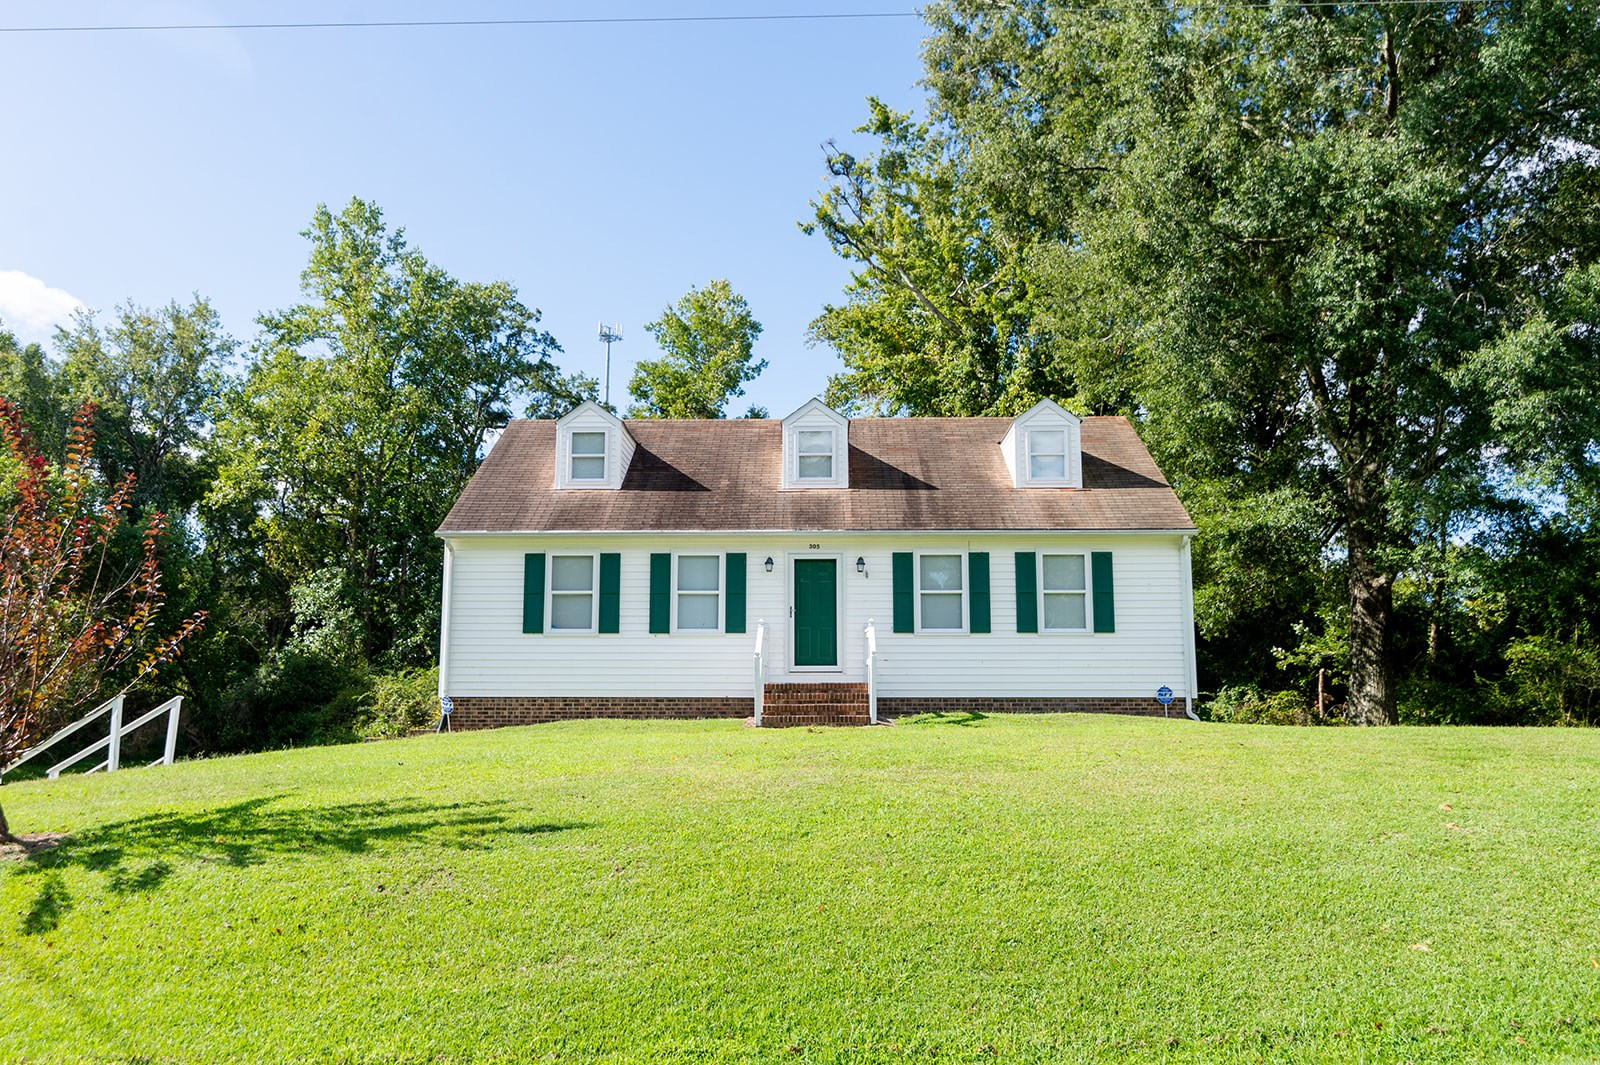 HERTFORD, NC HOME-OVER 1 ACRE LOT WITHIN TOWN LIMITS